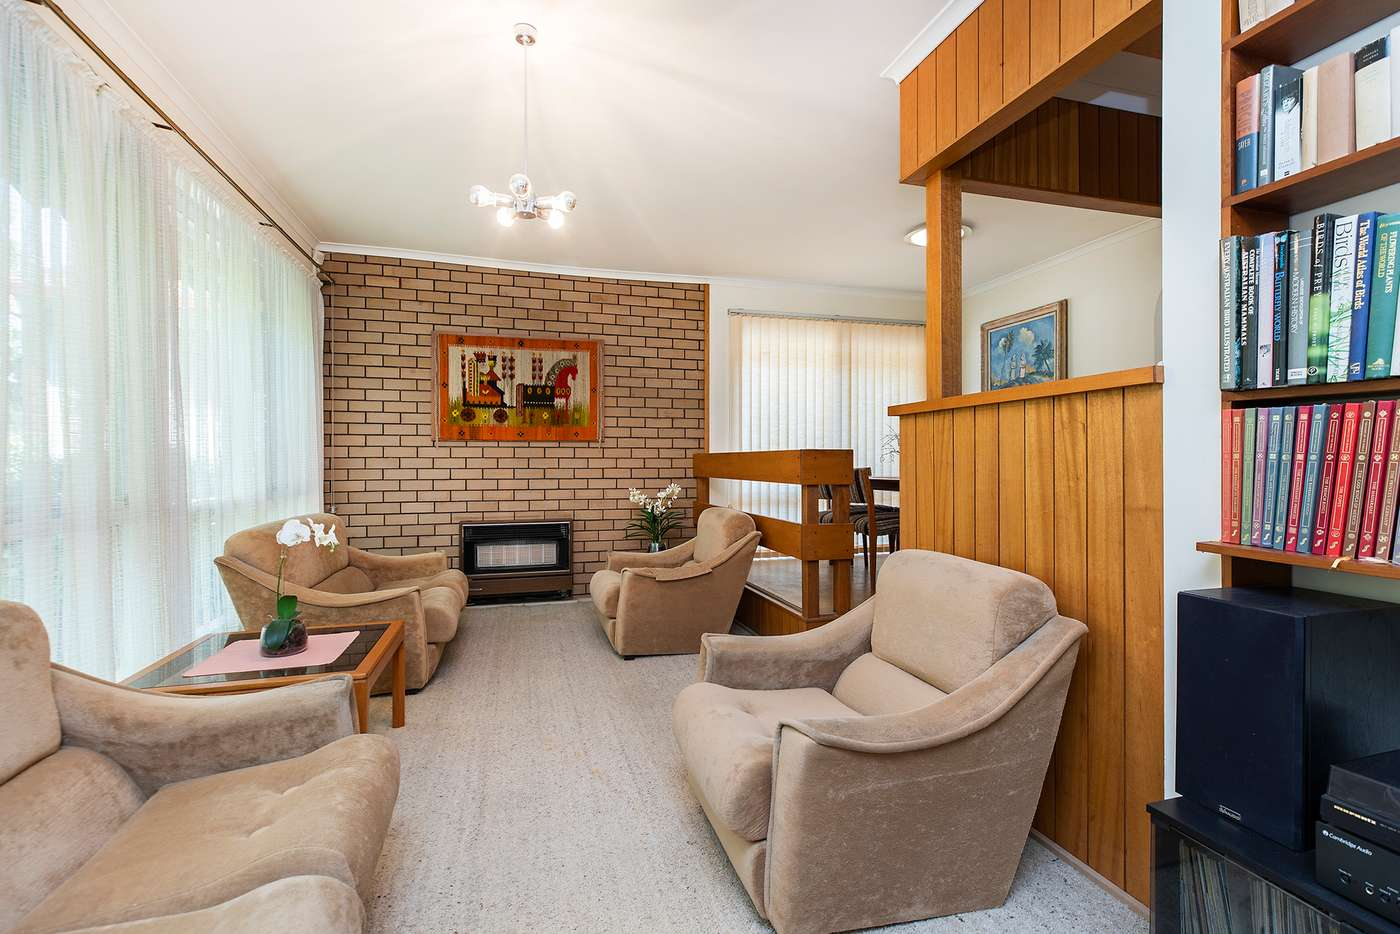 Fifth view of Homely house listing, 109 Eyre Street, Seaview Downs SA 5049